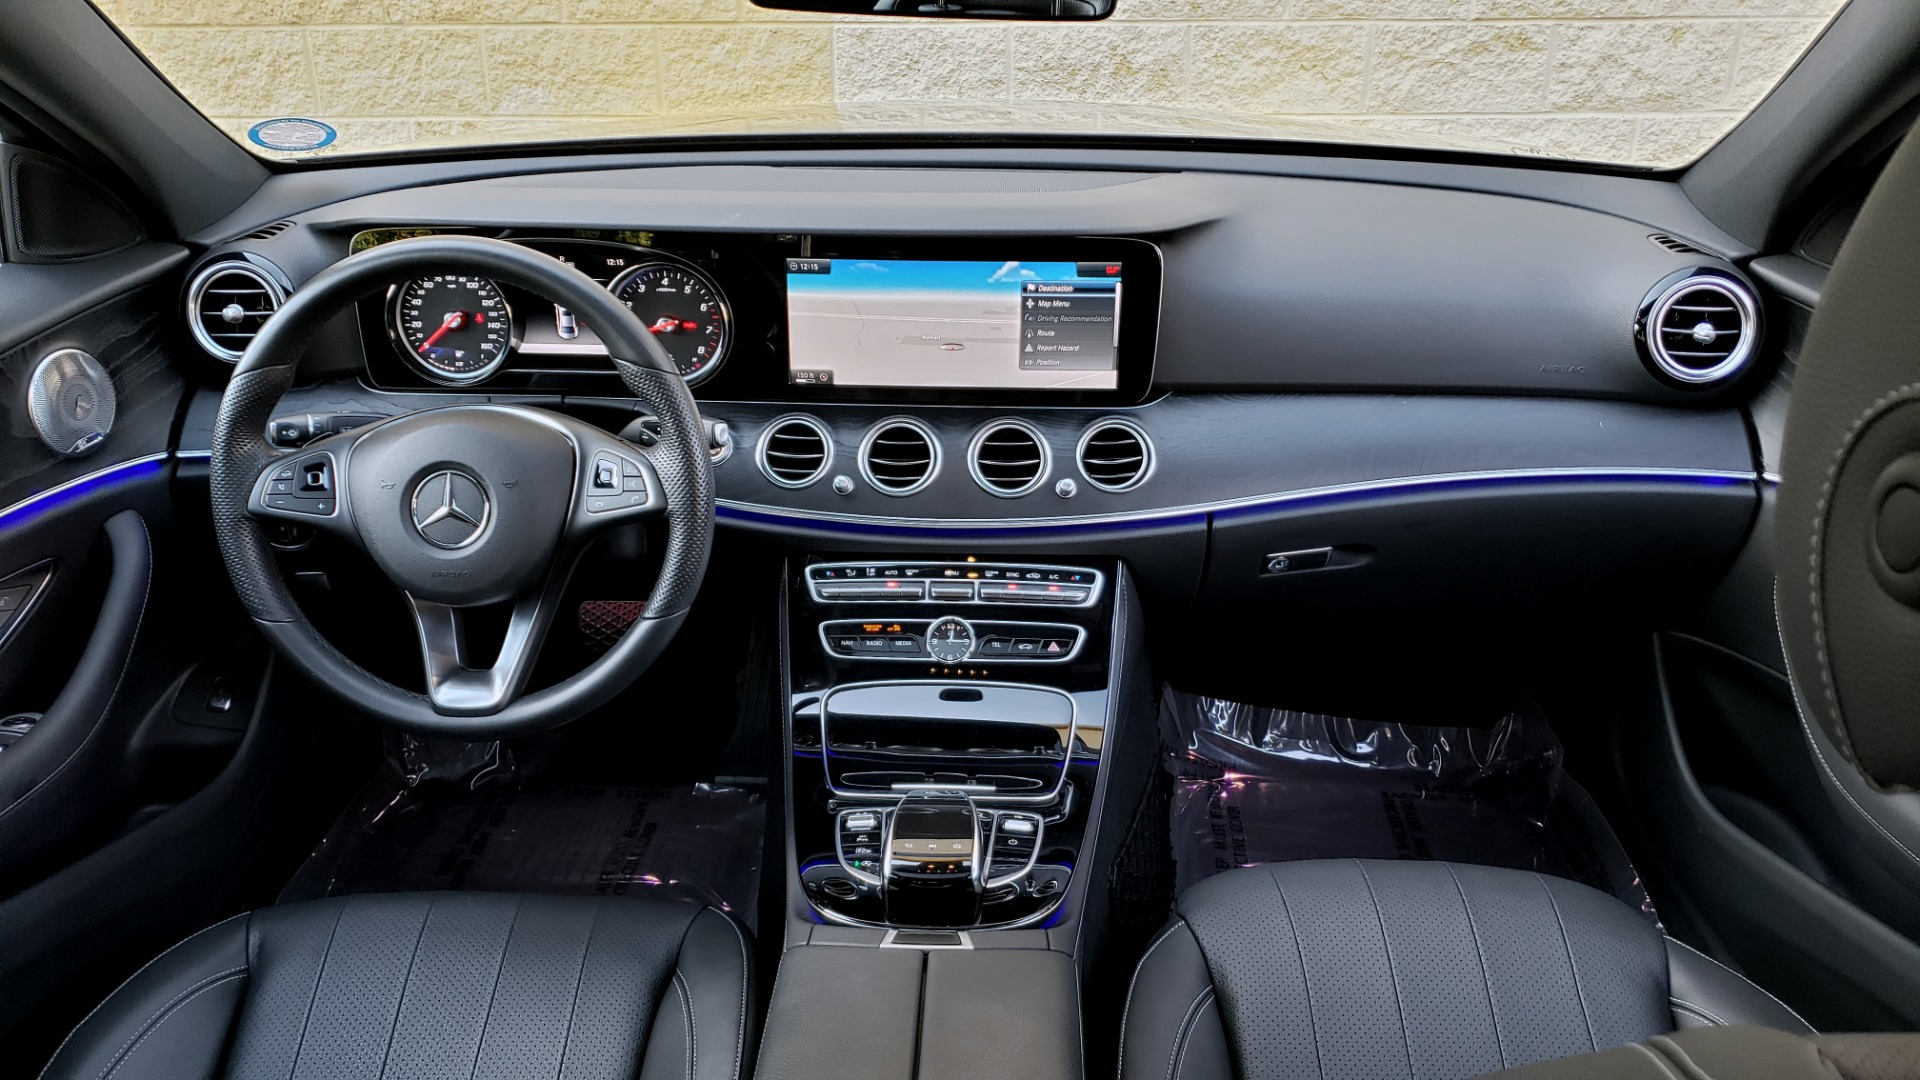 Used 2017 Mercedes-Benz E-CLASS E 300 PREMIUM / NAV / SUNROOF / BURMESTER / HTD STS / REARVIEW for sale Sold at Formula Imports in Charlotte NC 28227 78